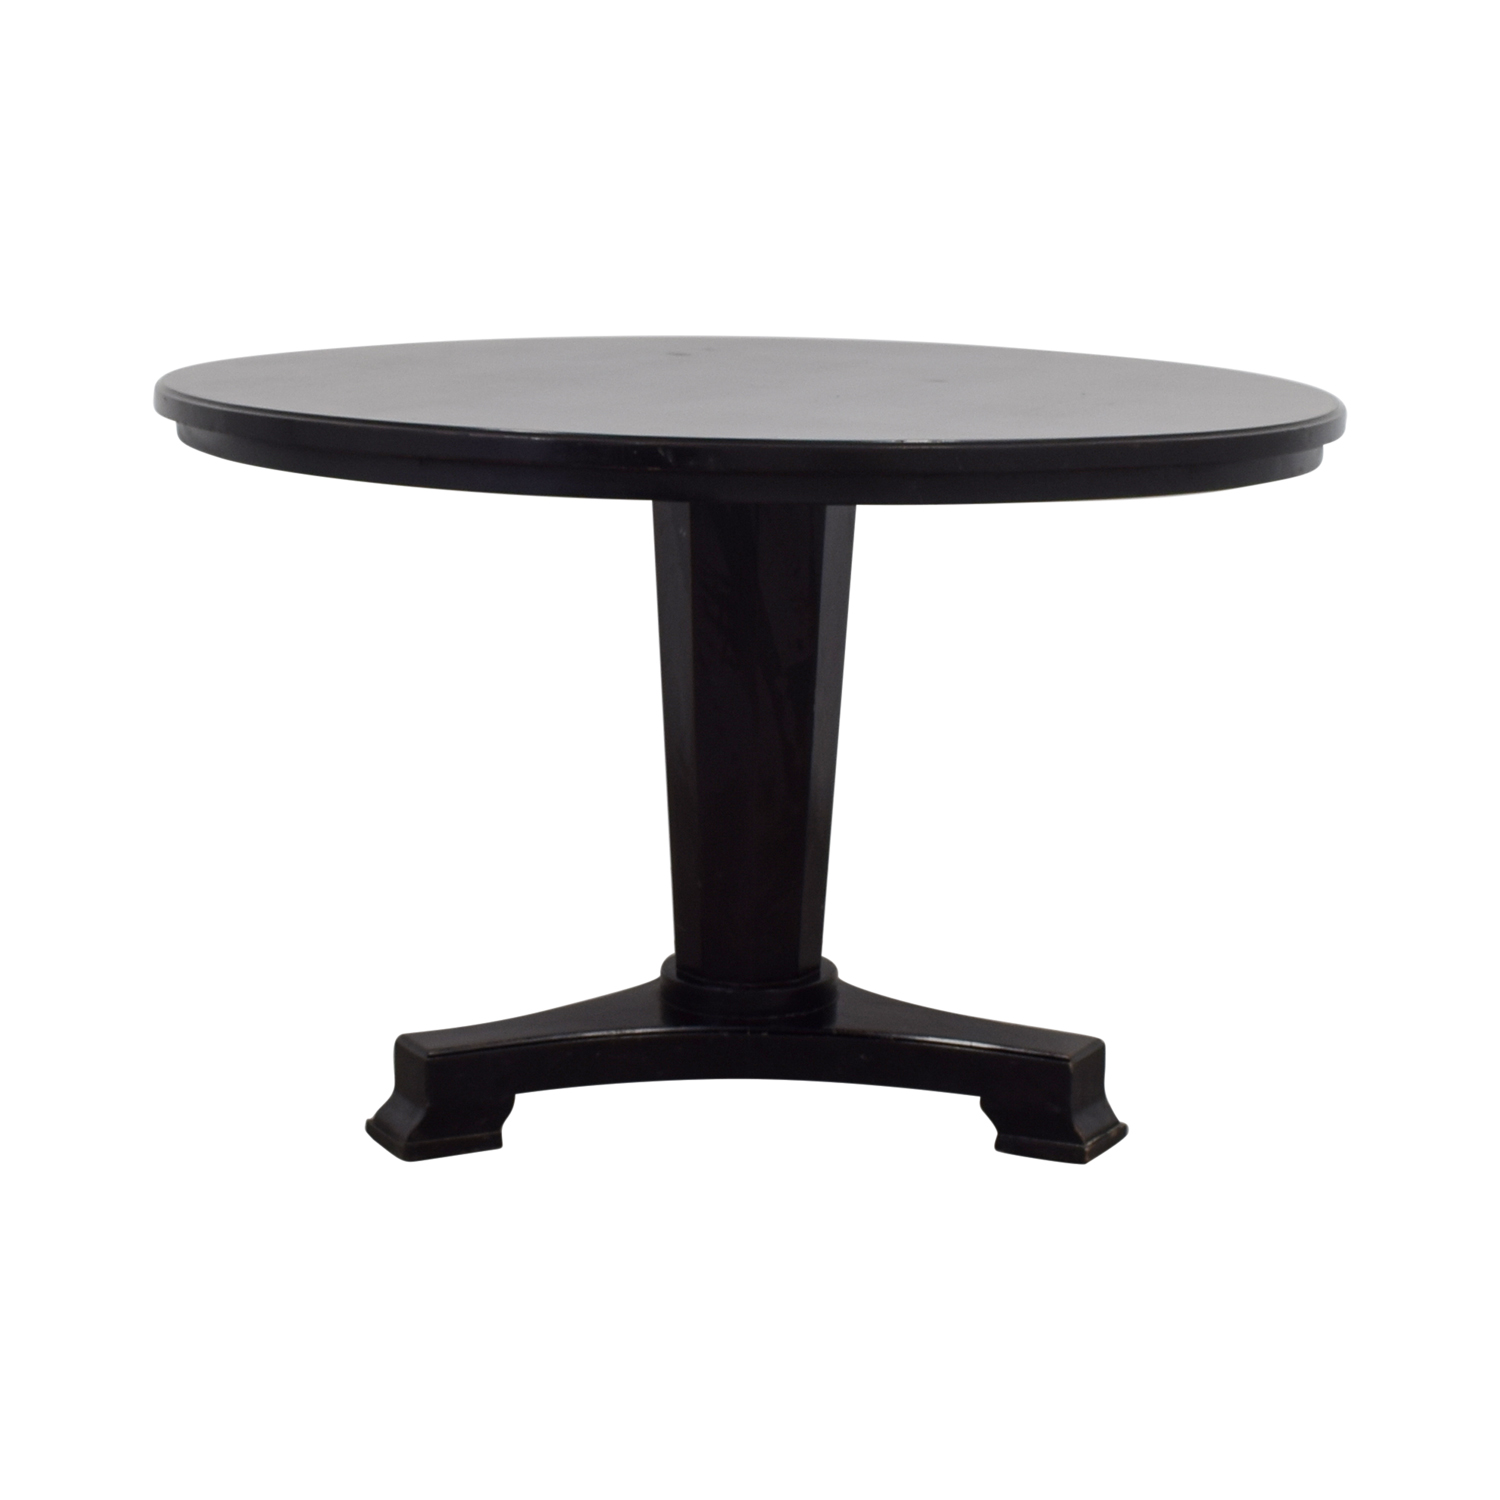 Oly Atelier Oly Atelier Round Black Table used